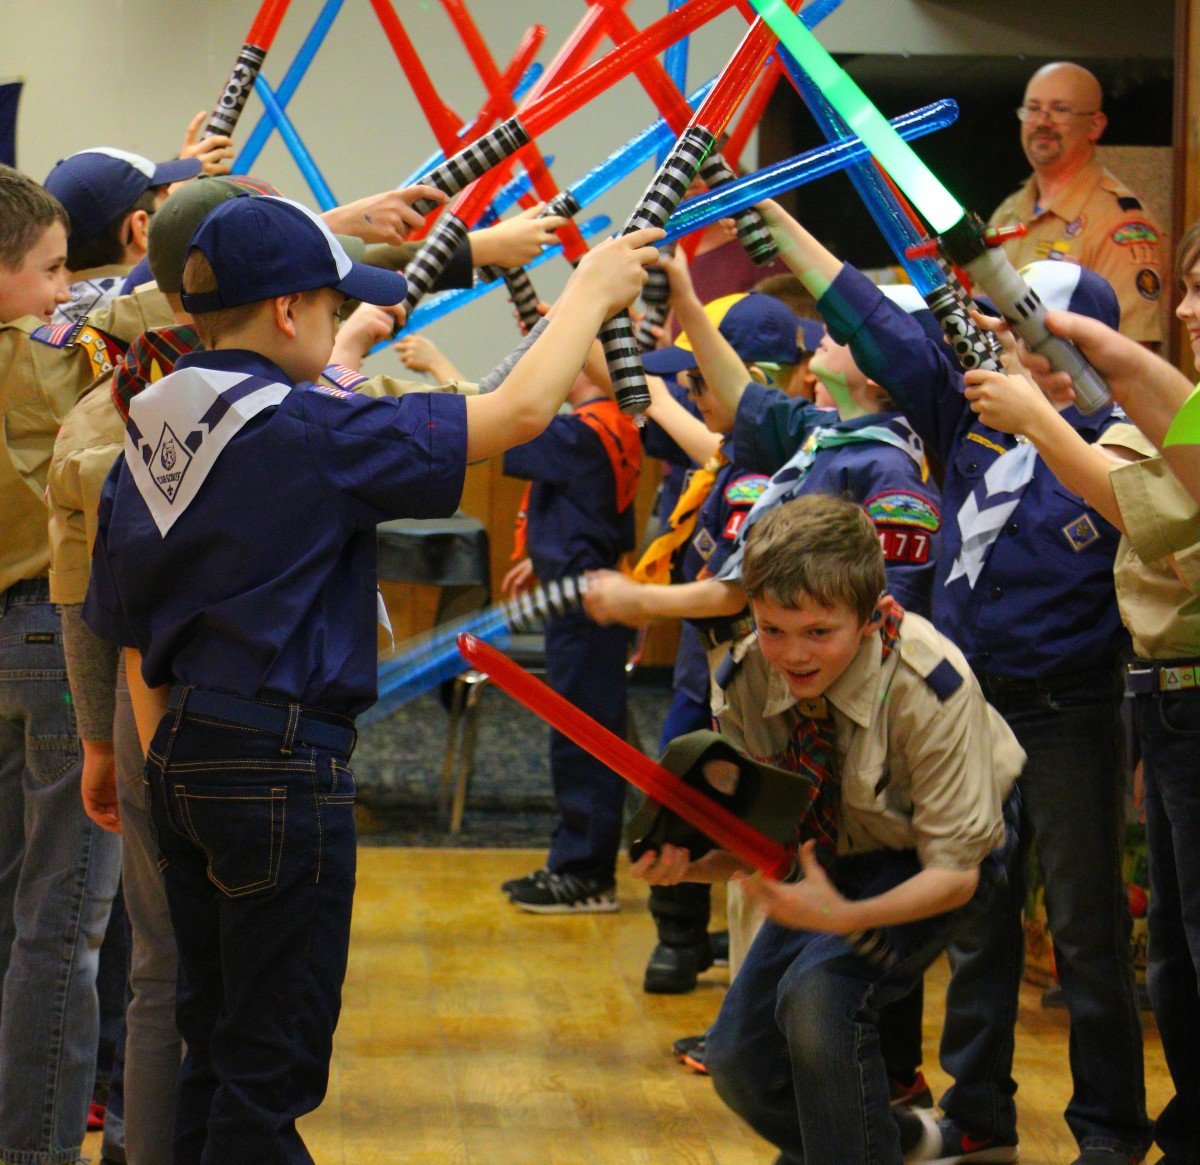 Crossing over to Boy Scouts - with Light Sabers!